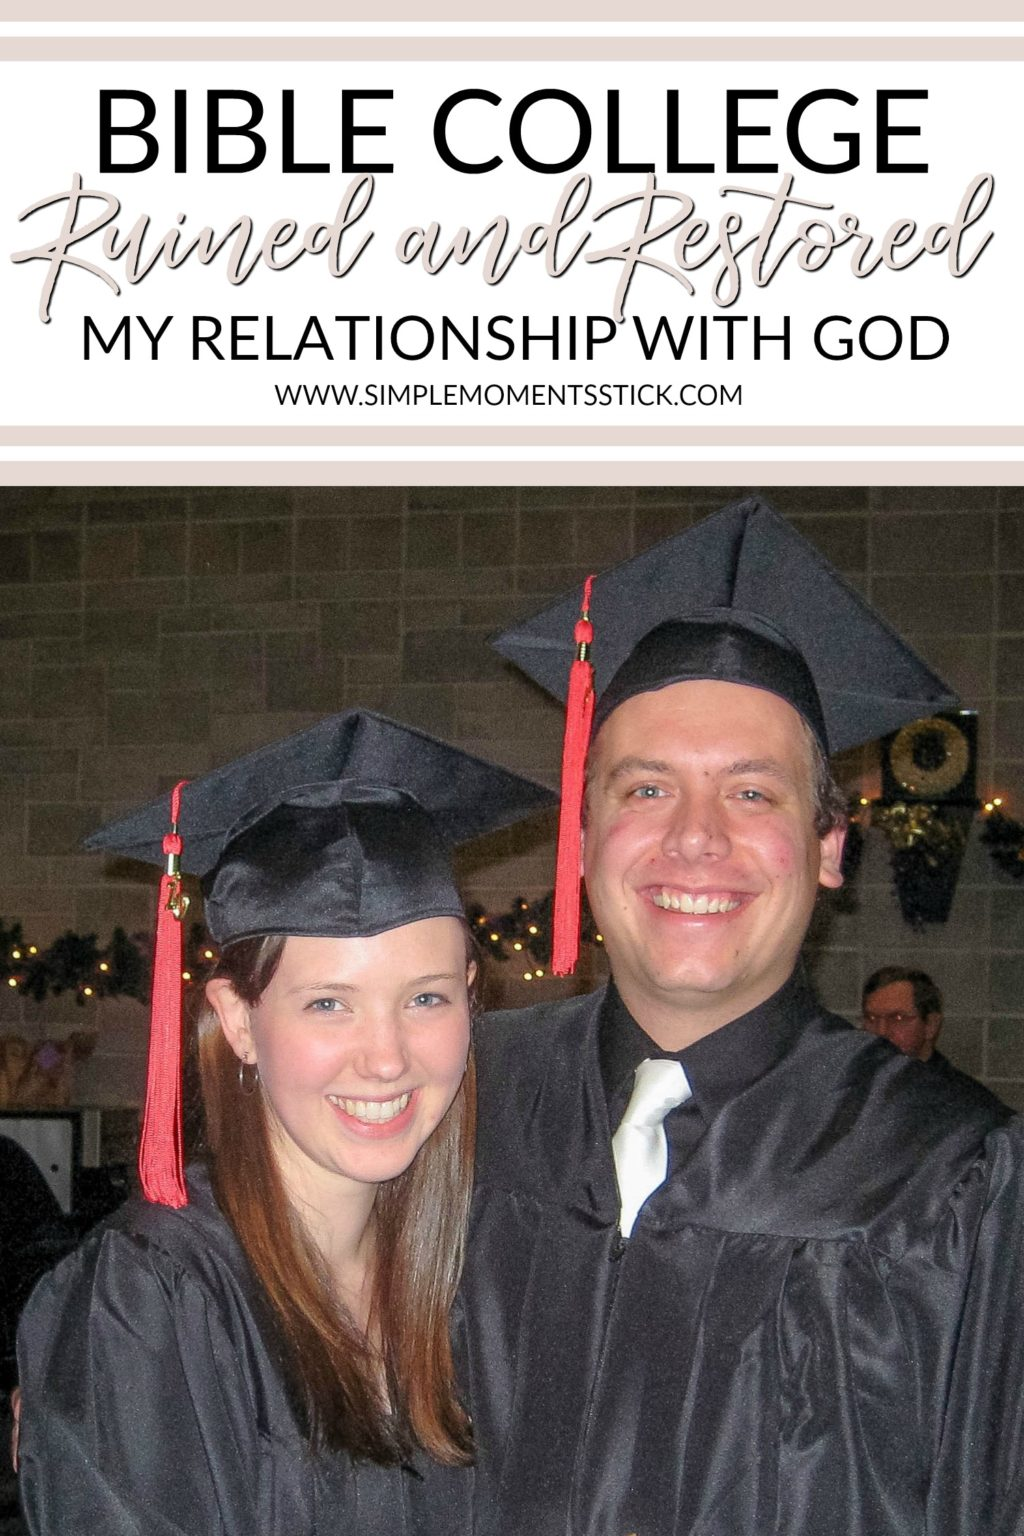 Attending Multnomah Bible College ruined and restored my relationship with God.  #biblecollege #faith #ministry #christianliving